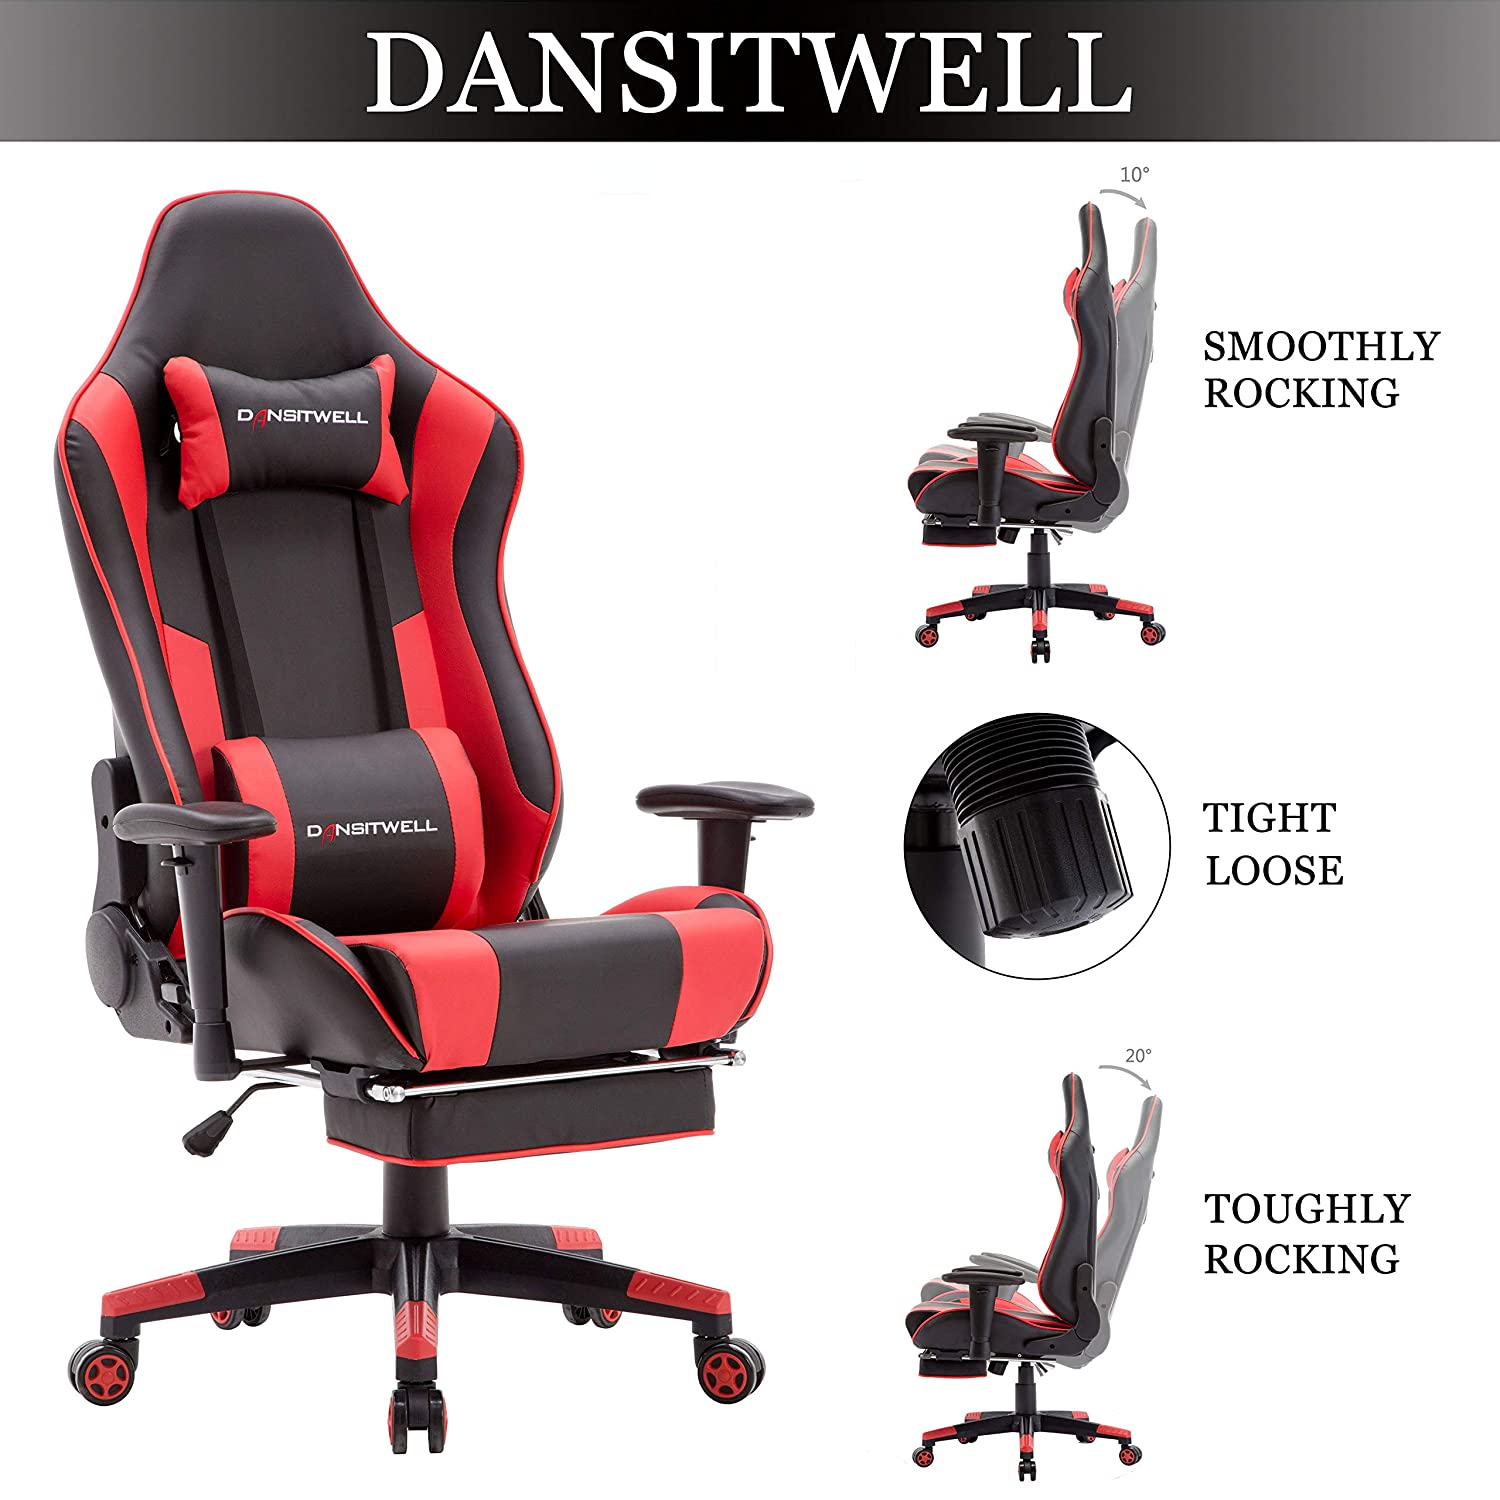 Awe Inspiring Dansitwell Gaming Chairs For Adults Ergonomic Adjustable Racing Chair With Footrest High Back Computer Chair With Headrest And Lumbar Support Red Squirreltailoven Fun Painted Chair Ideas Images Squirreltailovenorg